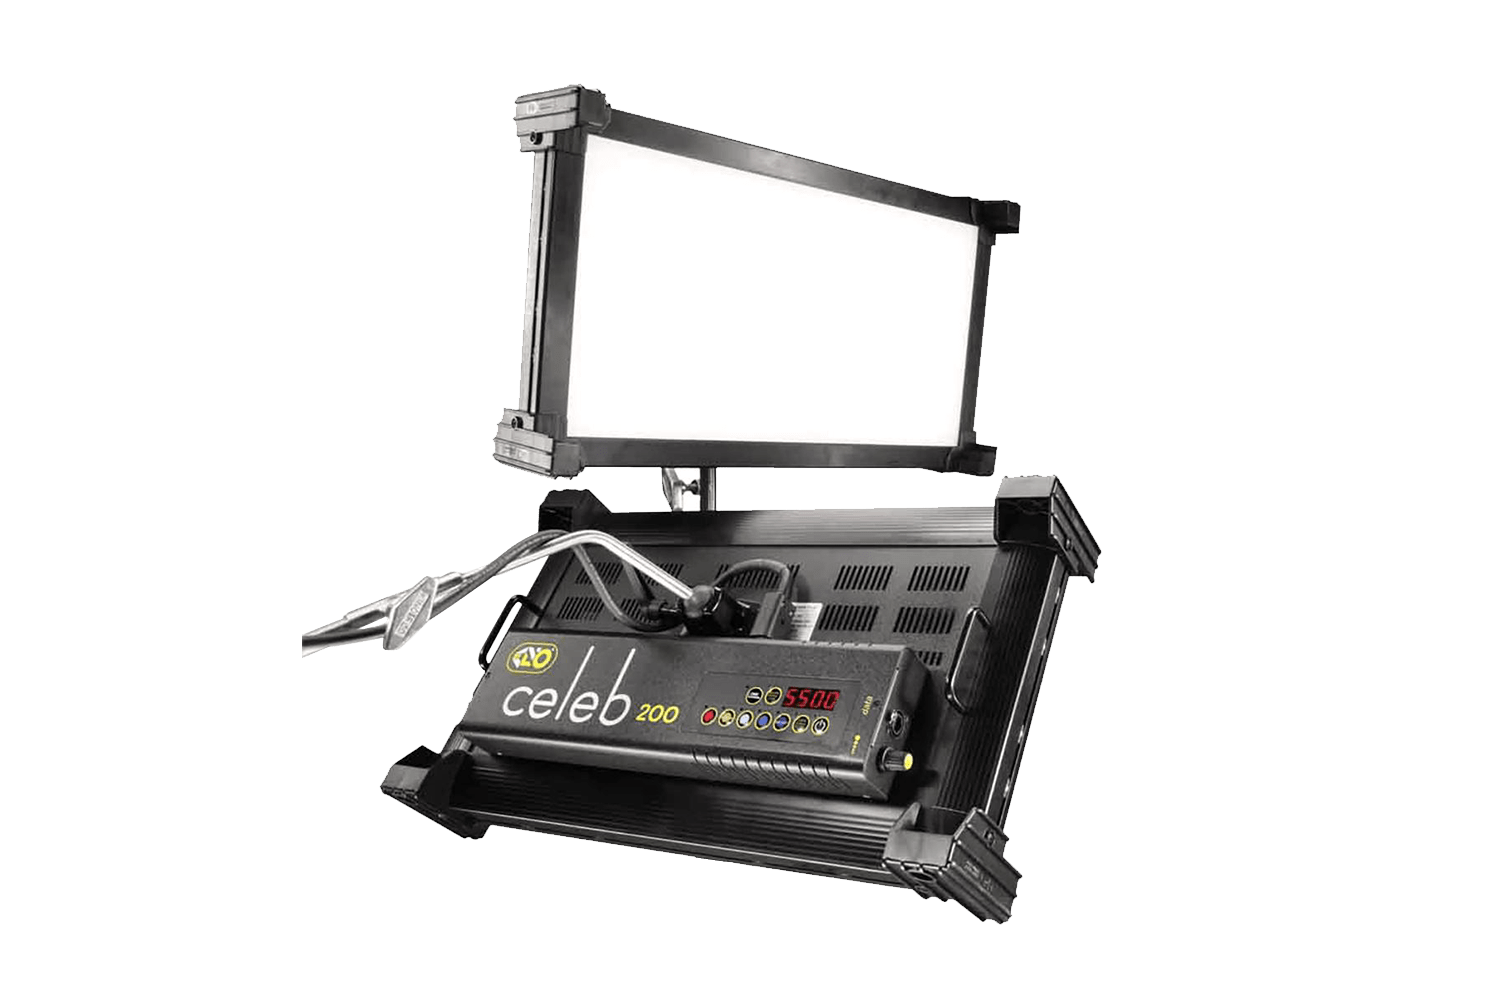 Led Dmx Kino Flo Celeb 200 Led Light Dmx